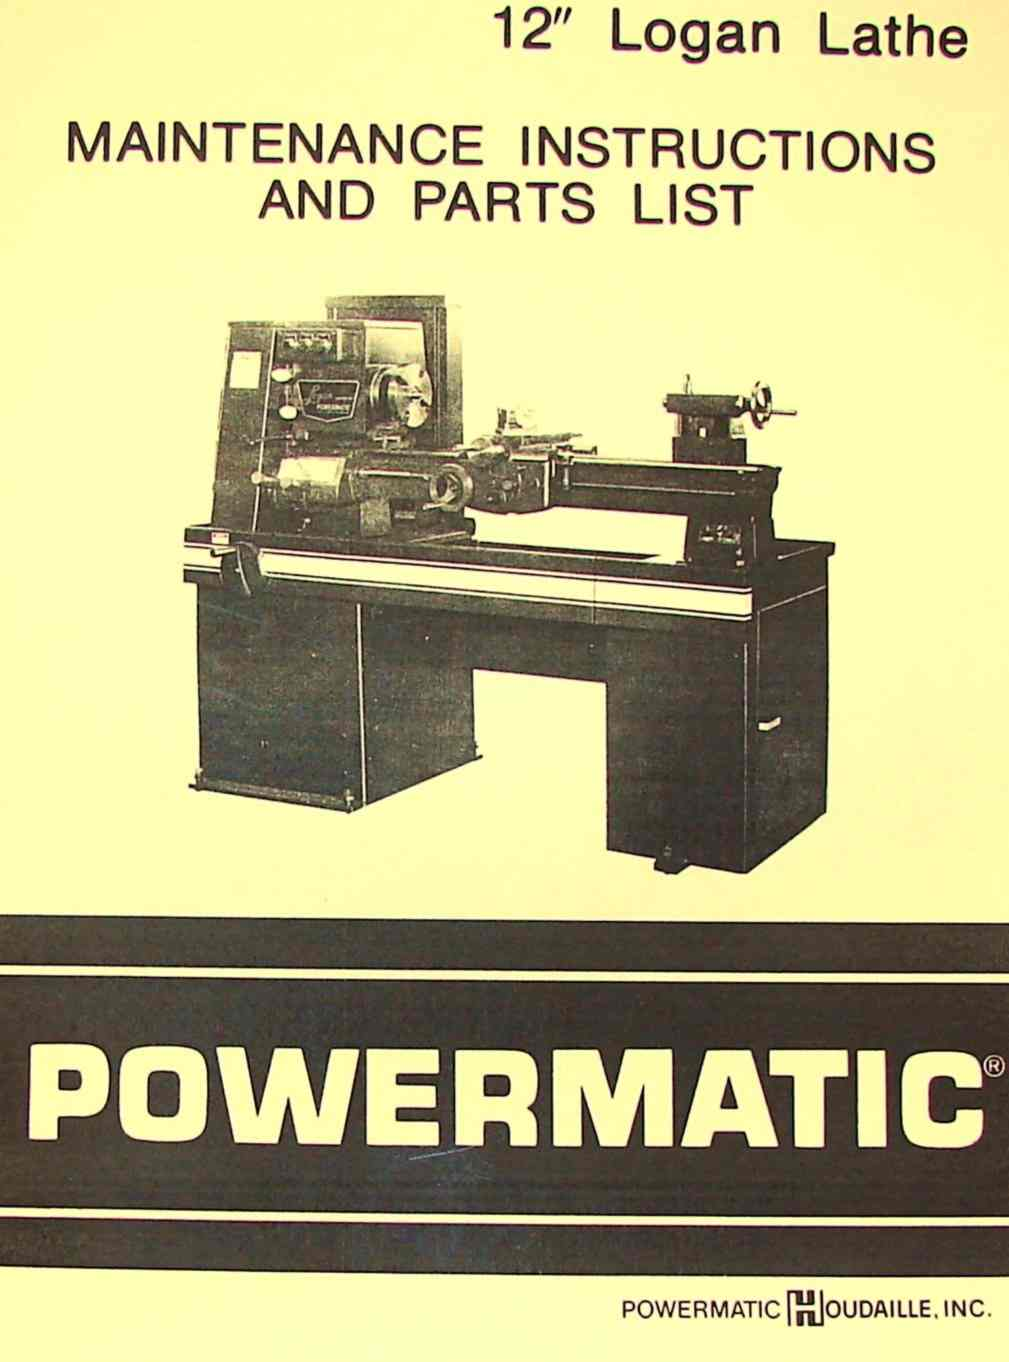 POWERMATIC Logan 12 quot Metal Lathe Parts Manual Ozark Tool